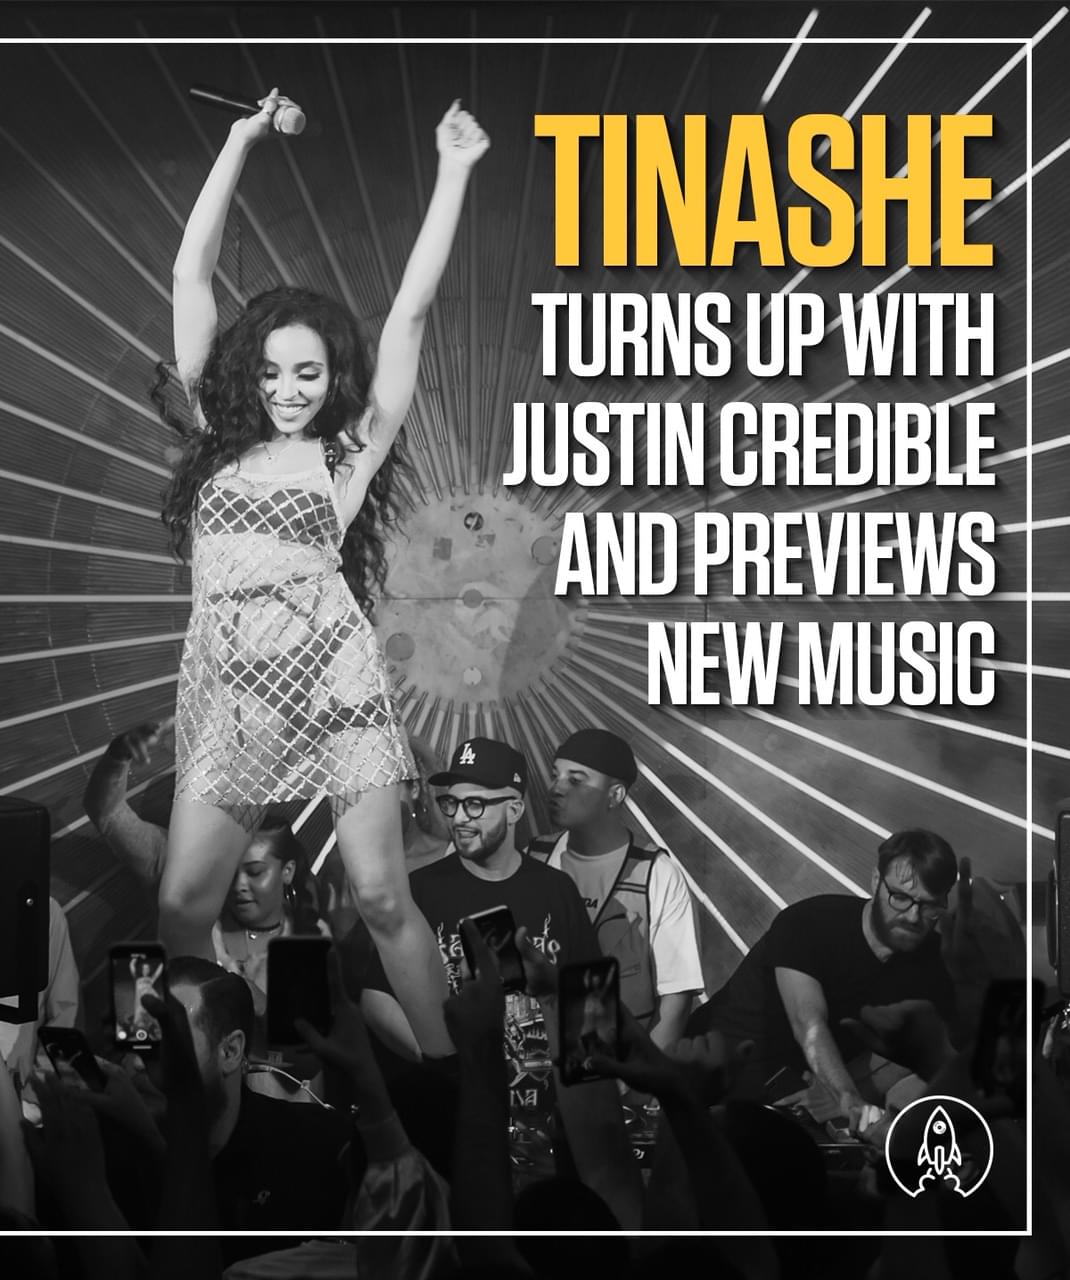 Tinashe Turns up w/ Justin Credible & Previews New Music [WATCH]